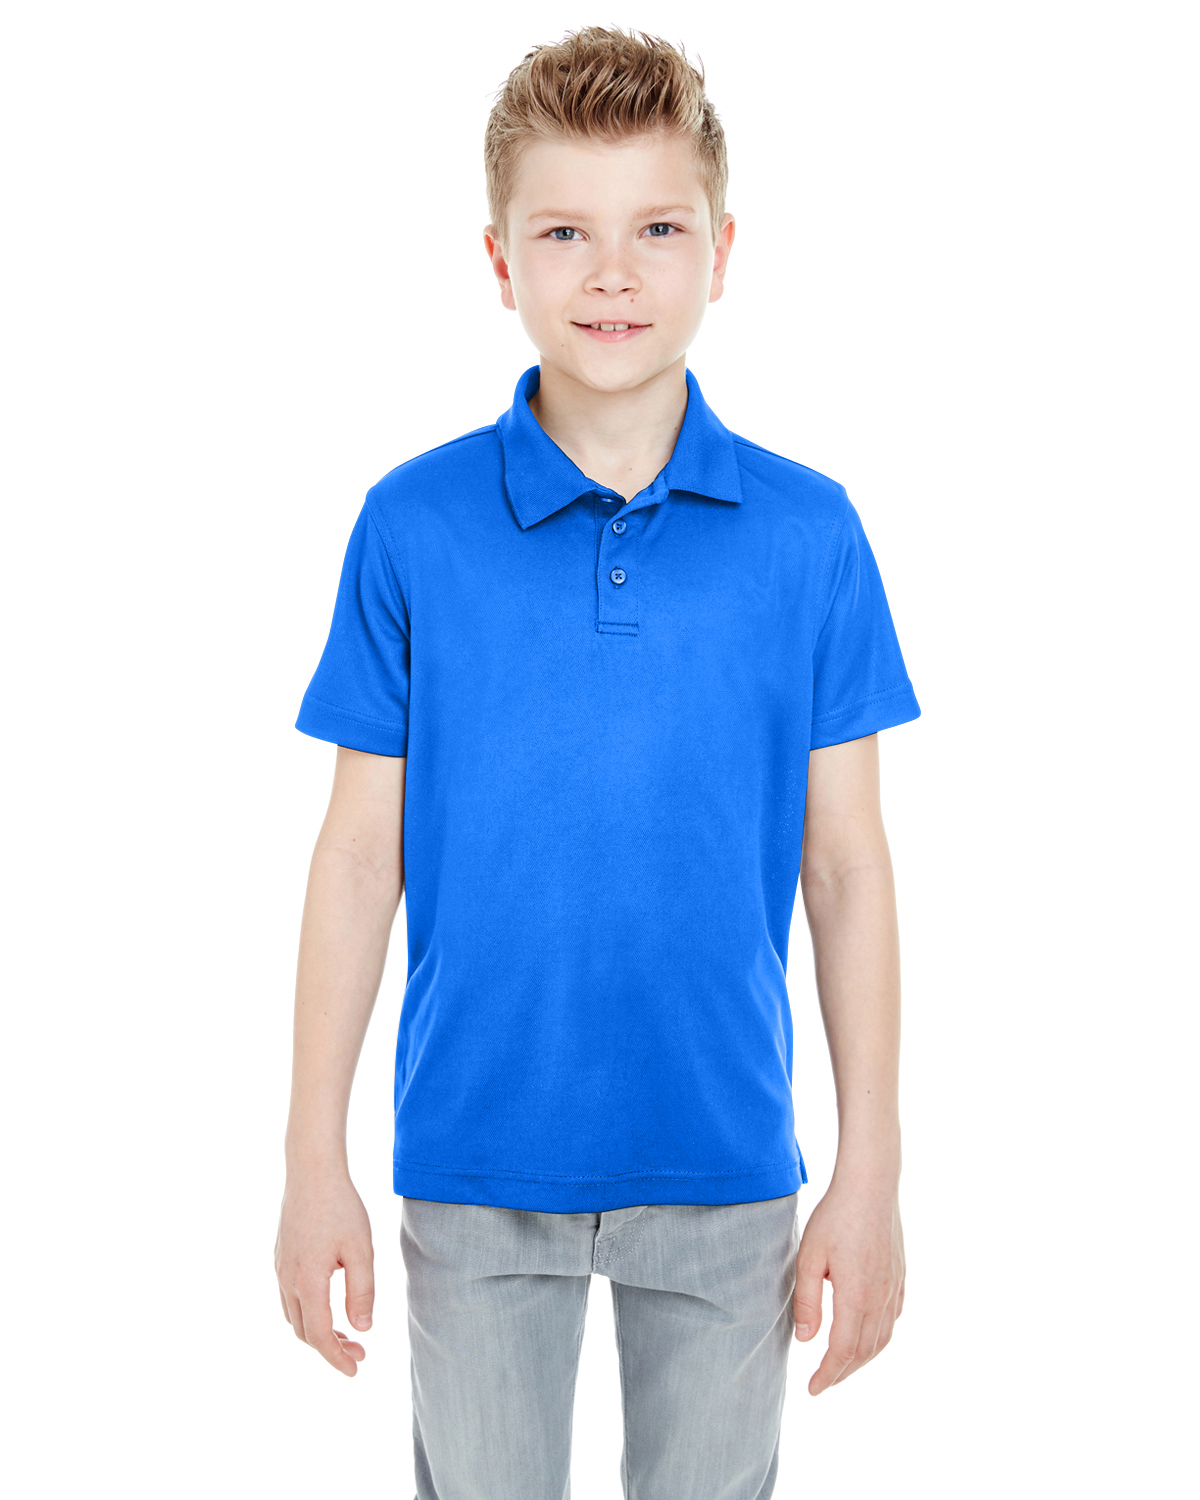 Details about  /Brand New Plain Pique Knit  Mens Polo Casual Shirts Wear with Sun Protection